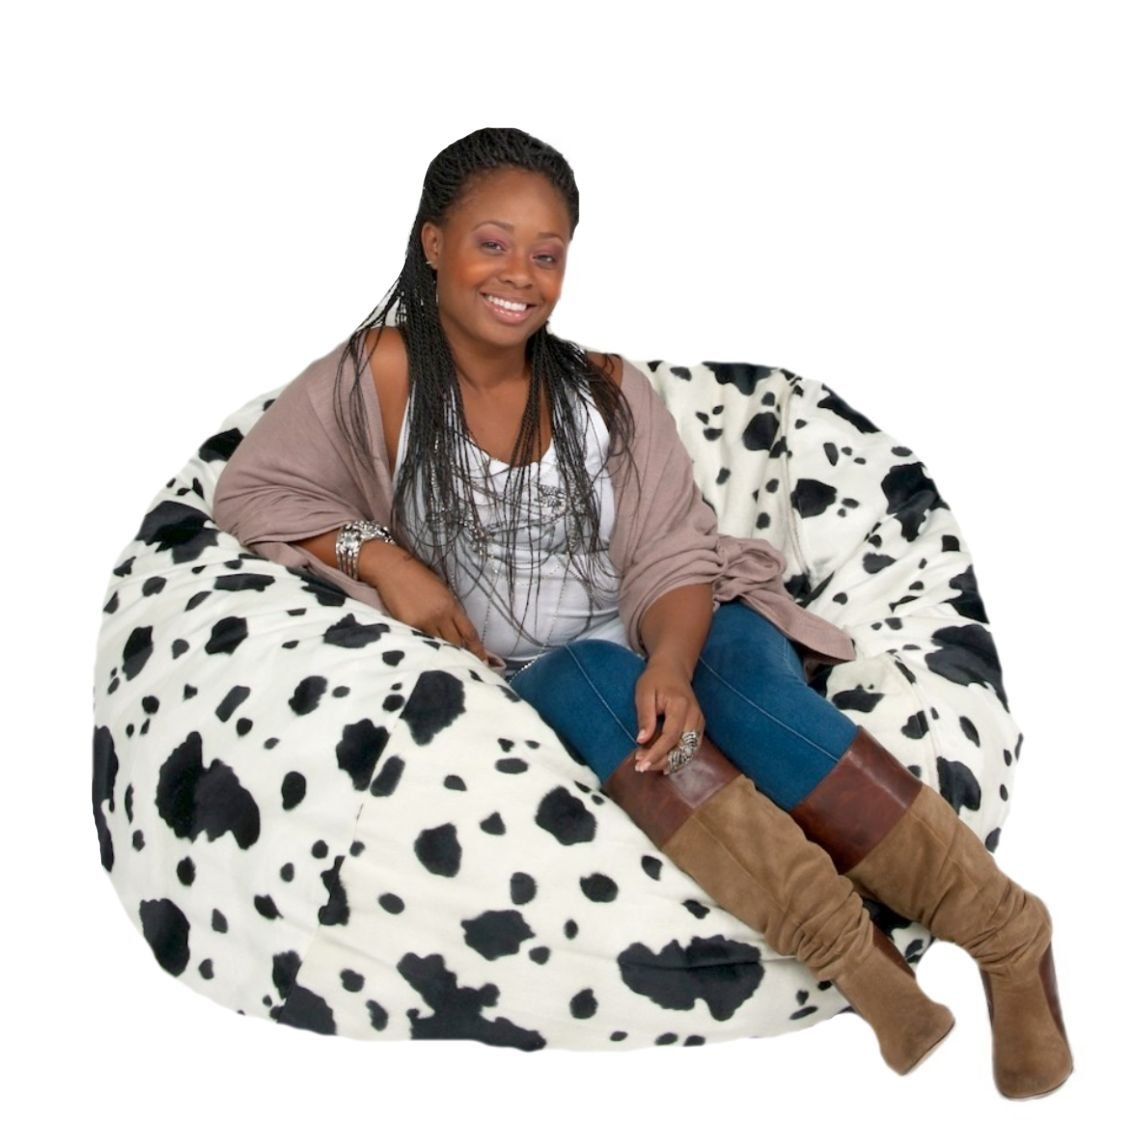 Cozy Sack Bean Bag Chair: Large 4 Foot Foam Filled Bean Bag - Large Bean Bag Chair, Protective Liner, Plush Micro Fiber Removable Cover - Cow by Cozy